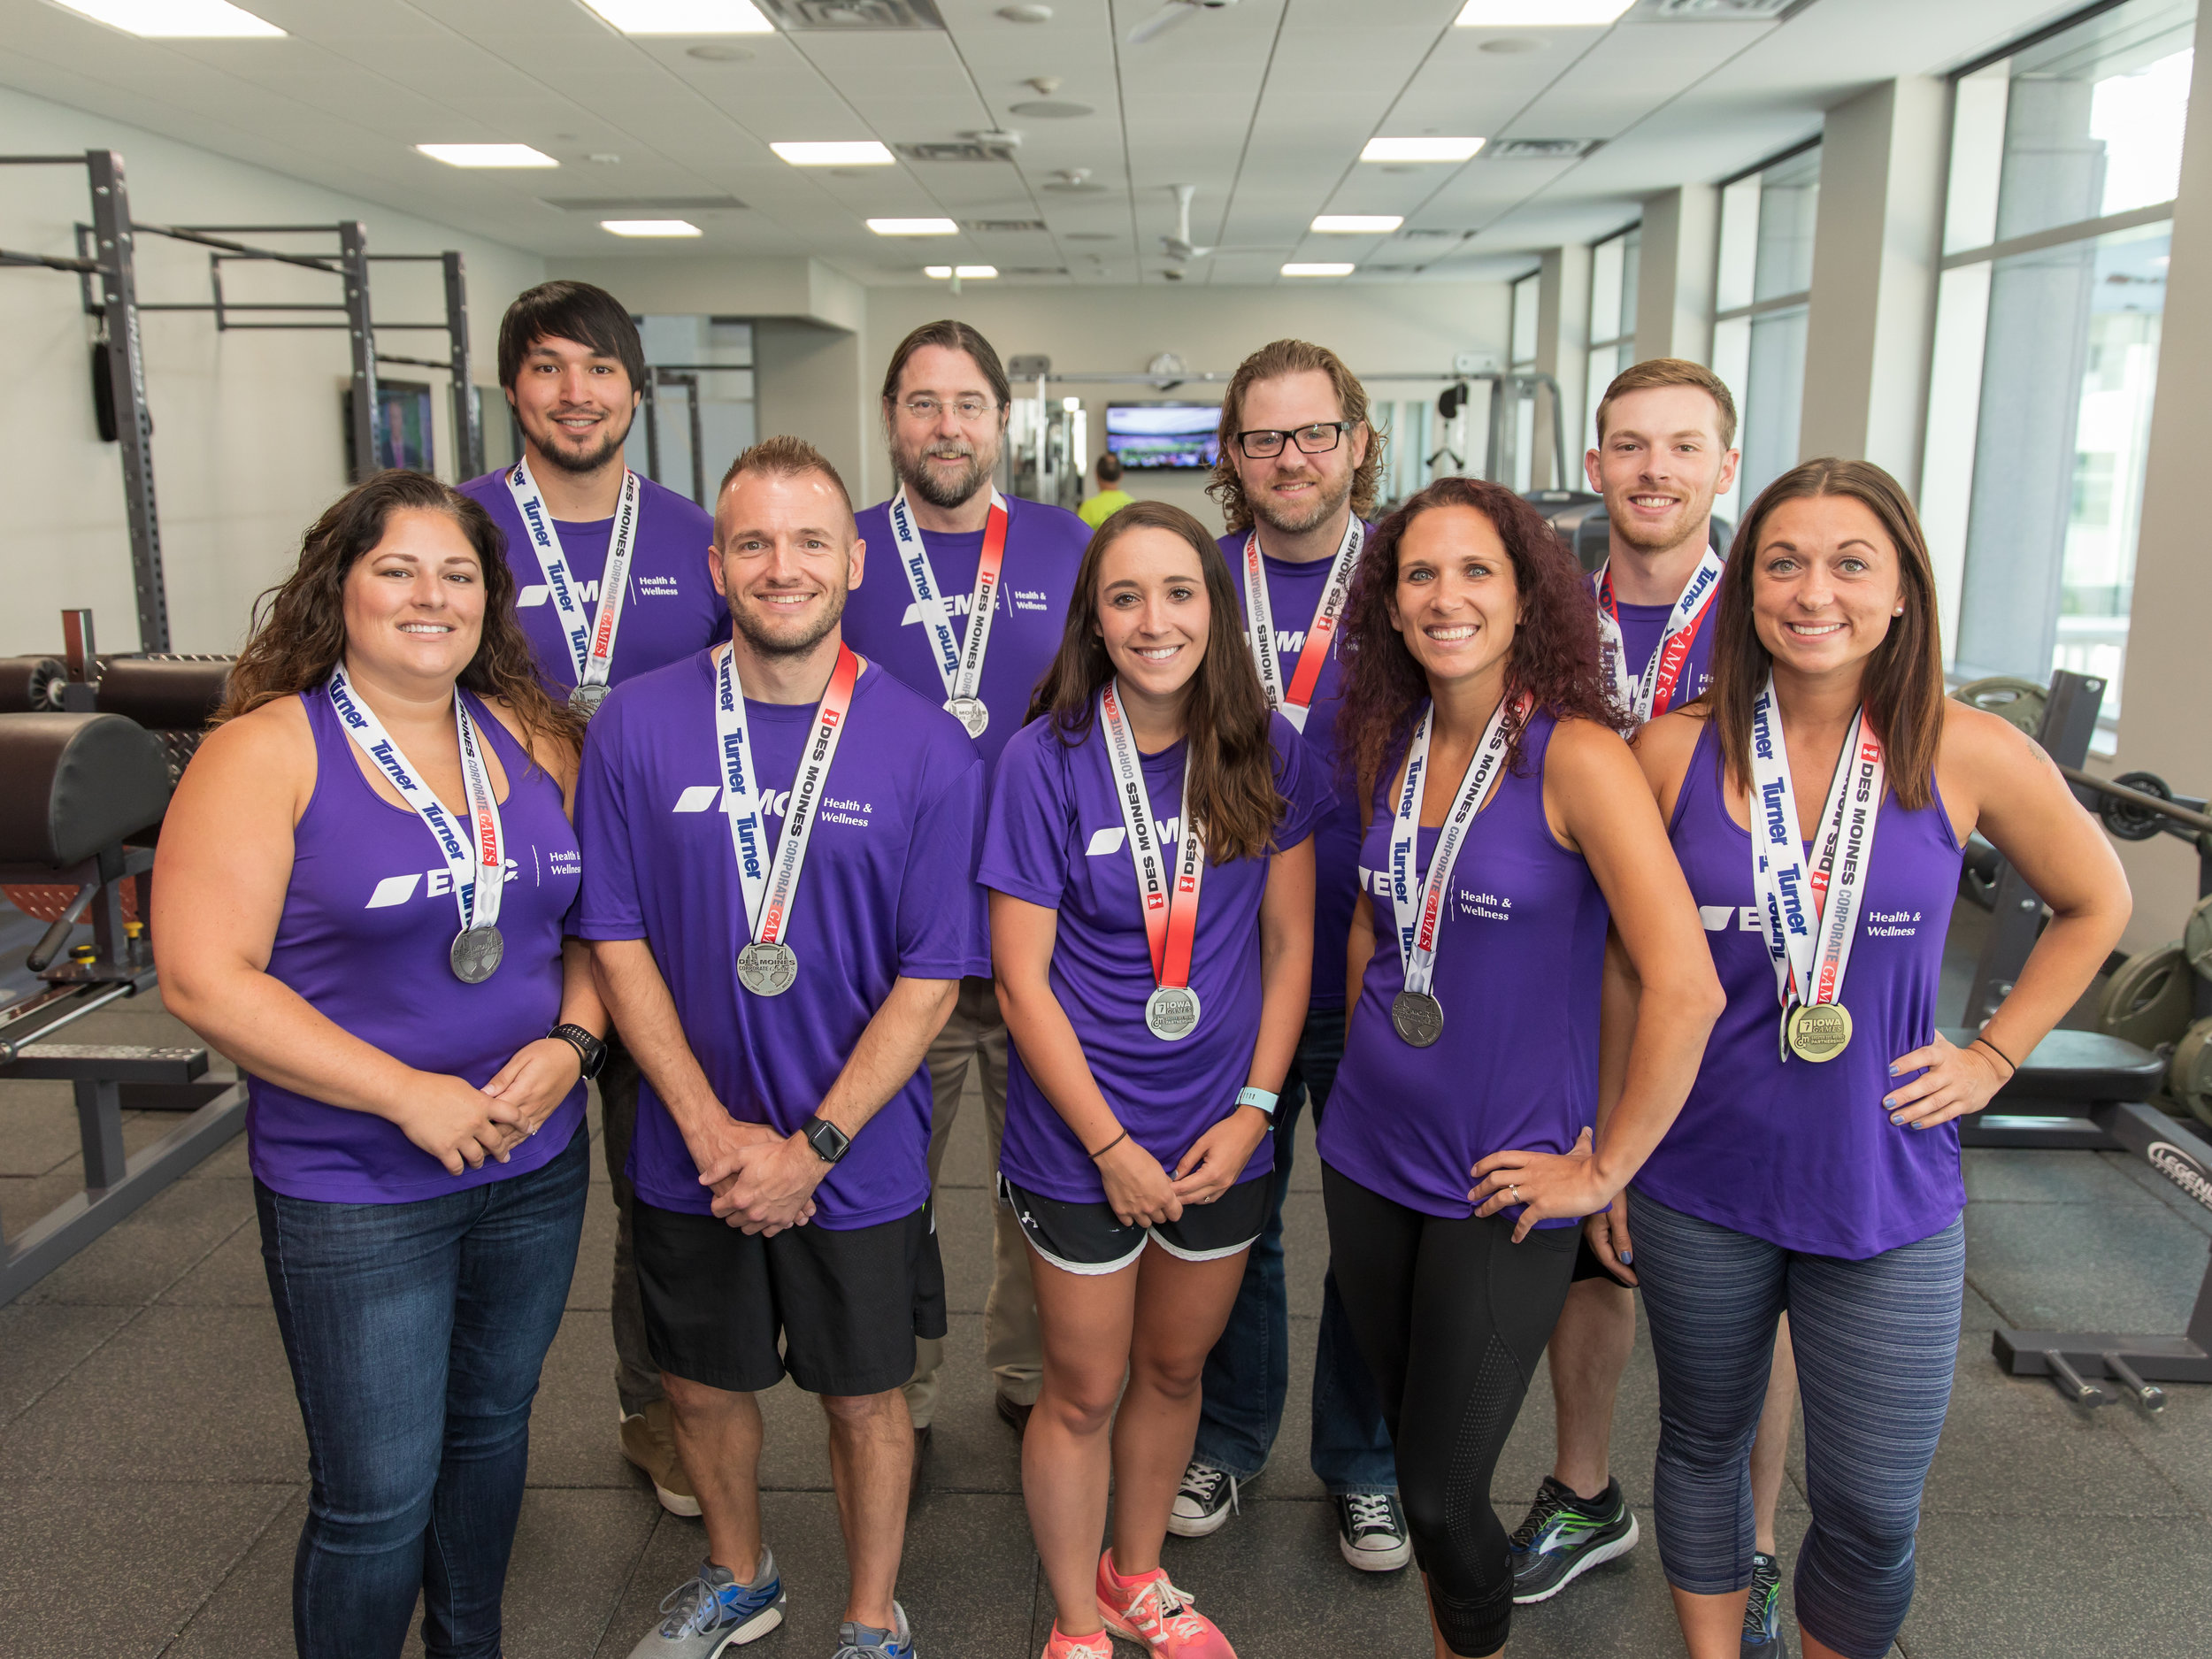 EMC's Corporate Games winners